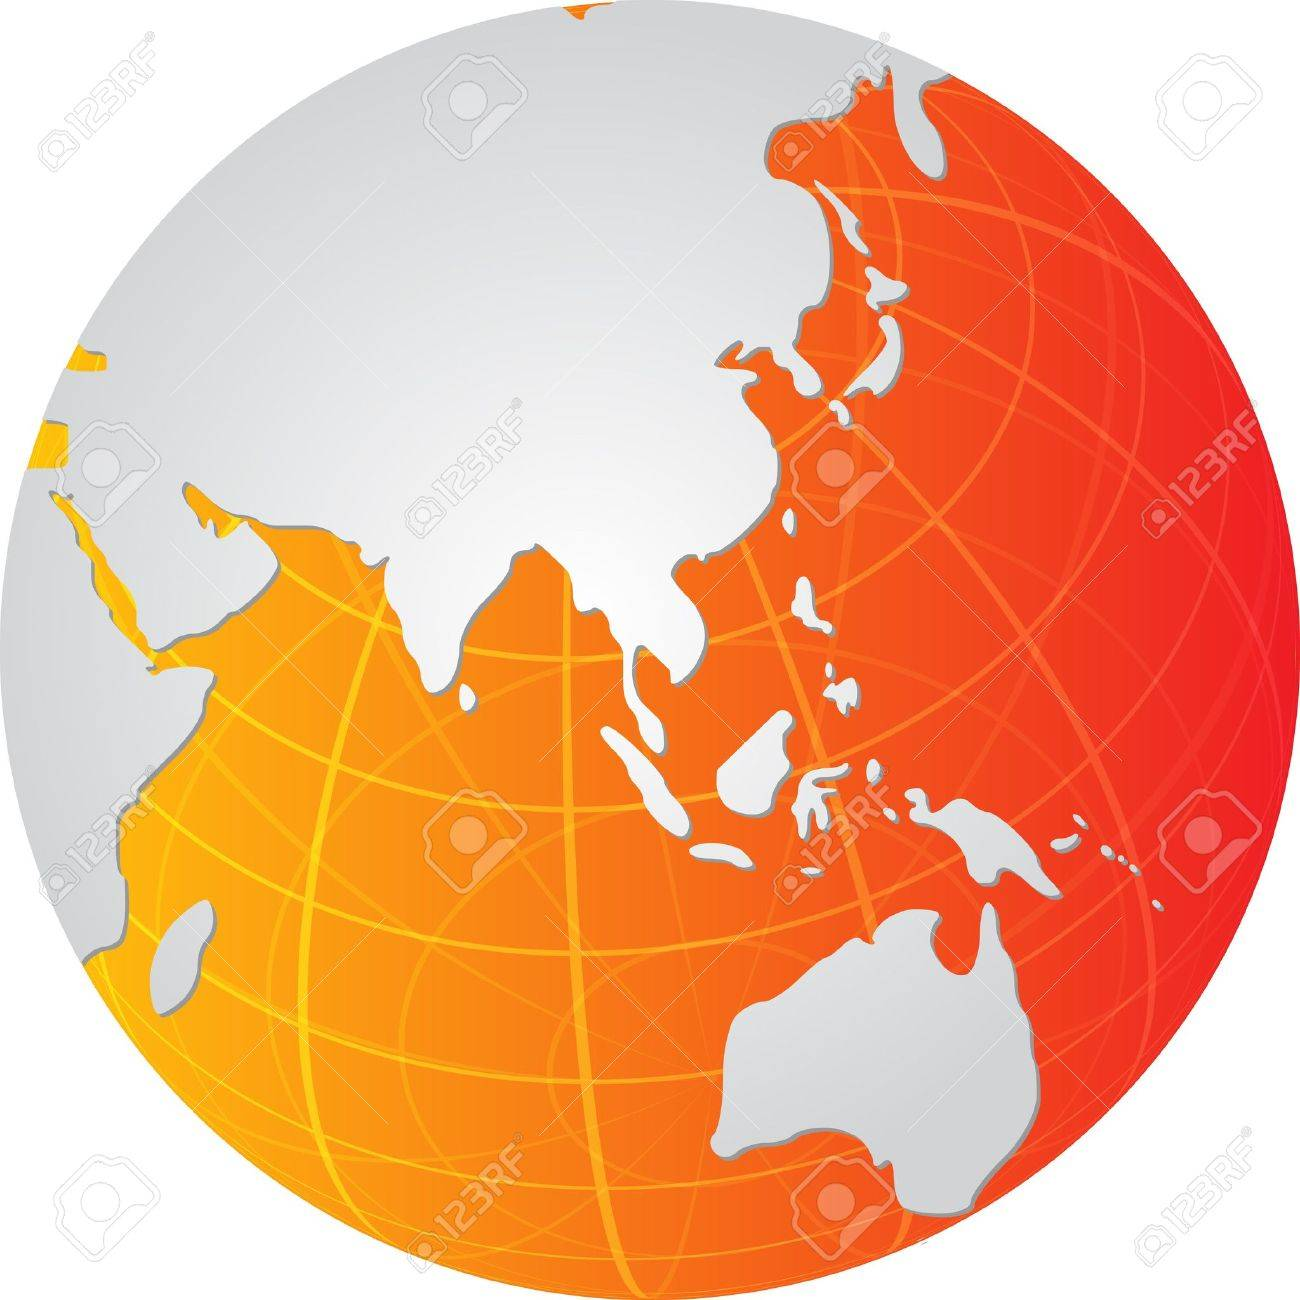 Map Of The Asia Pacific.Stock Illustration